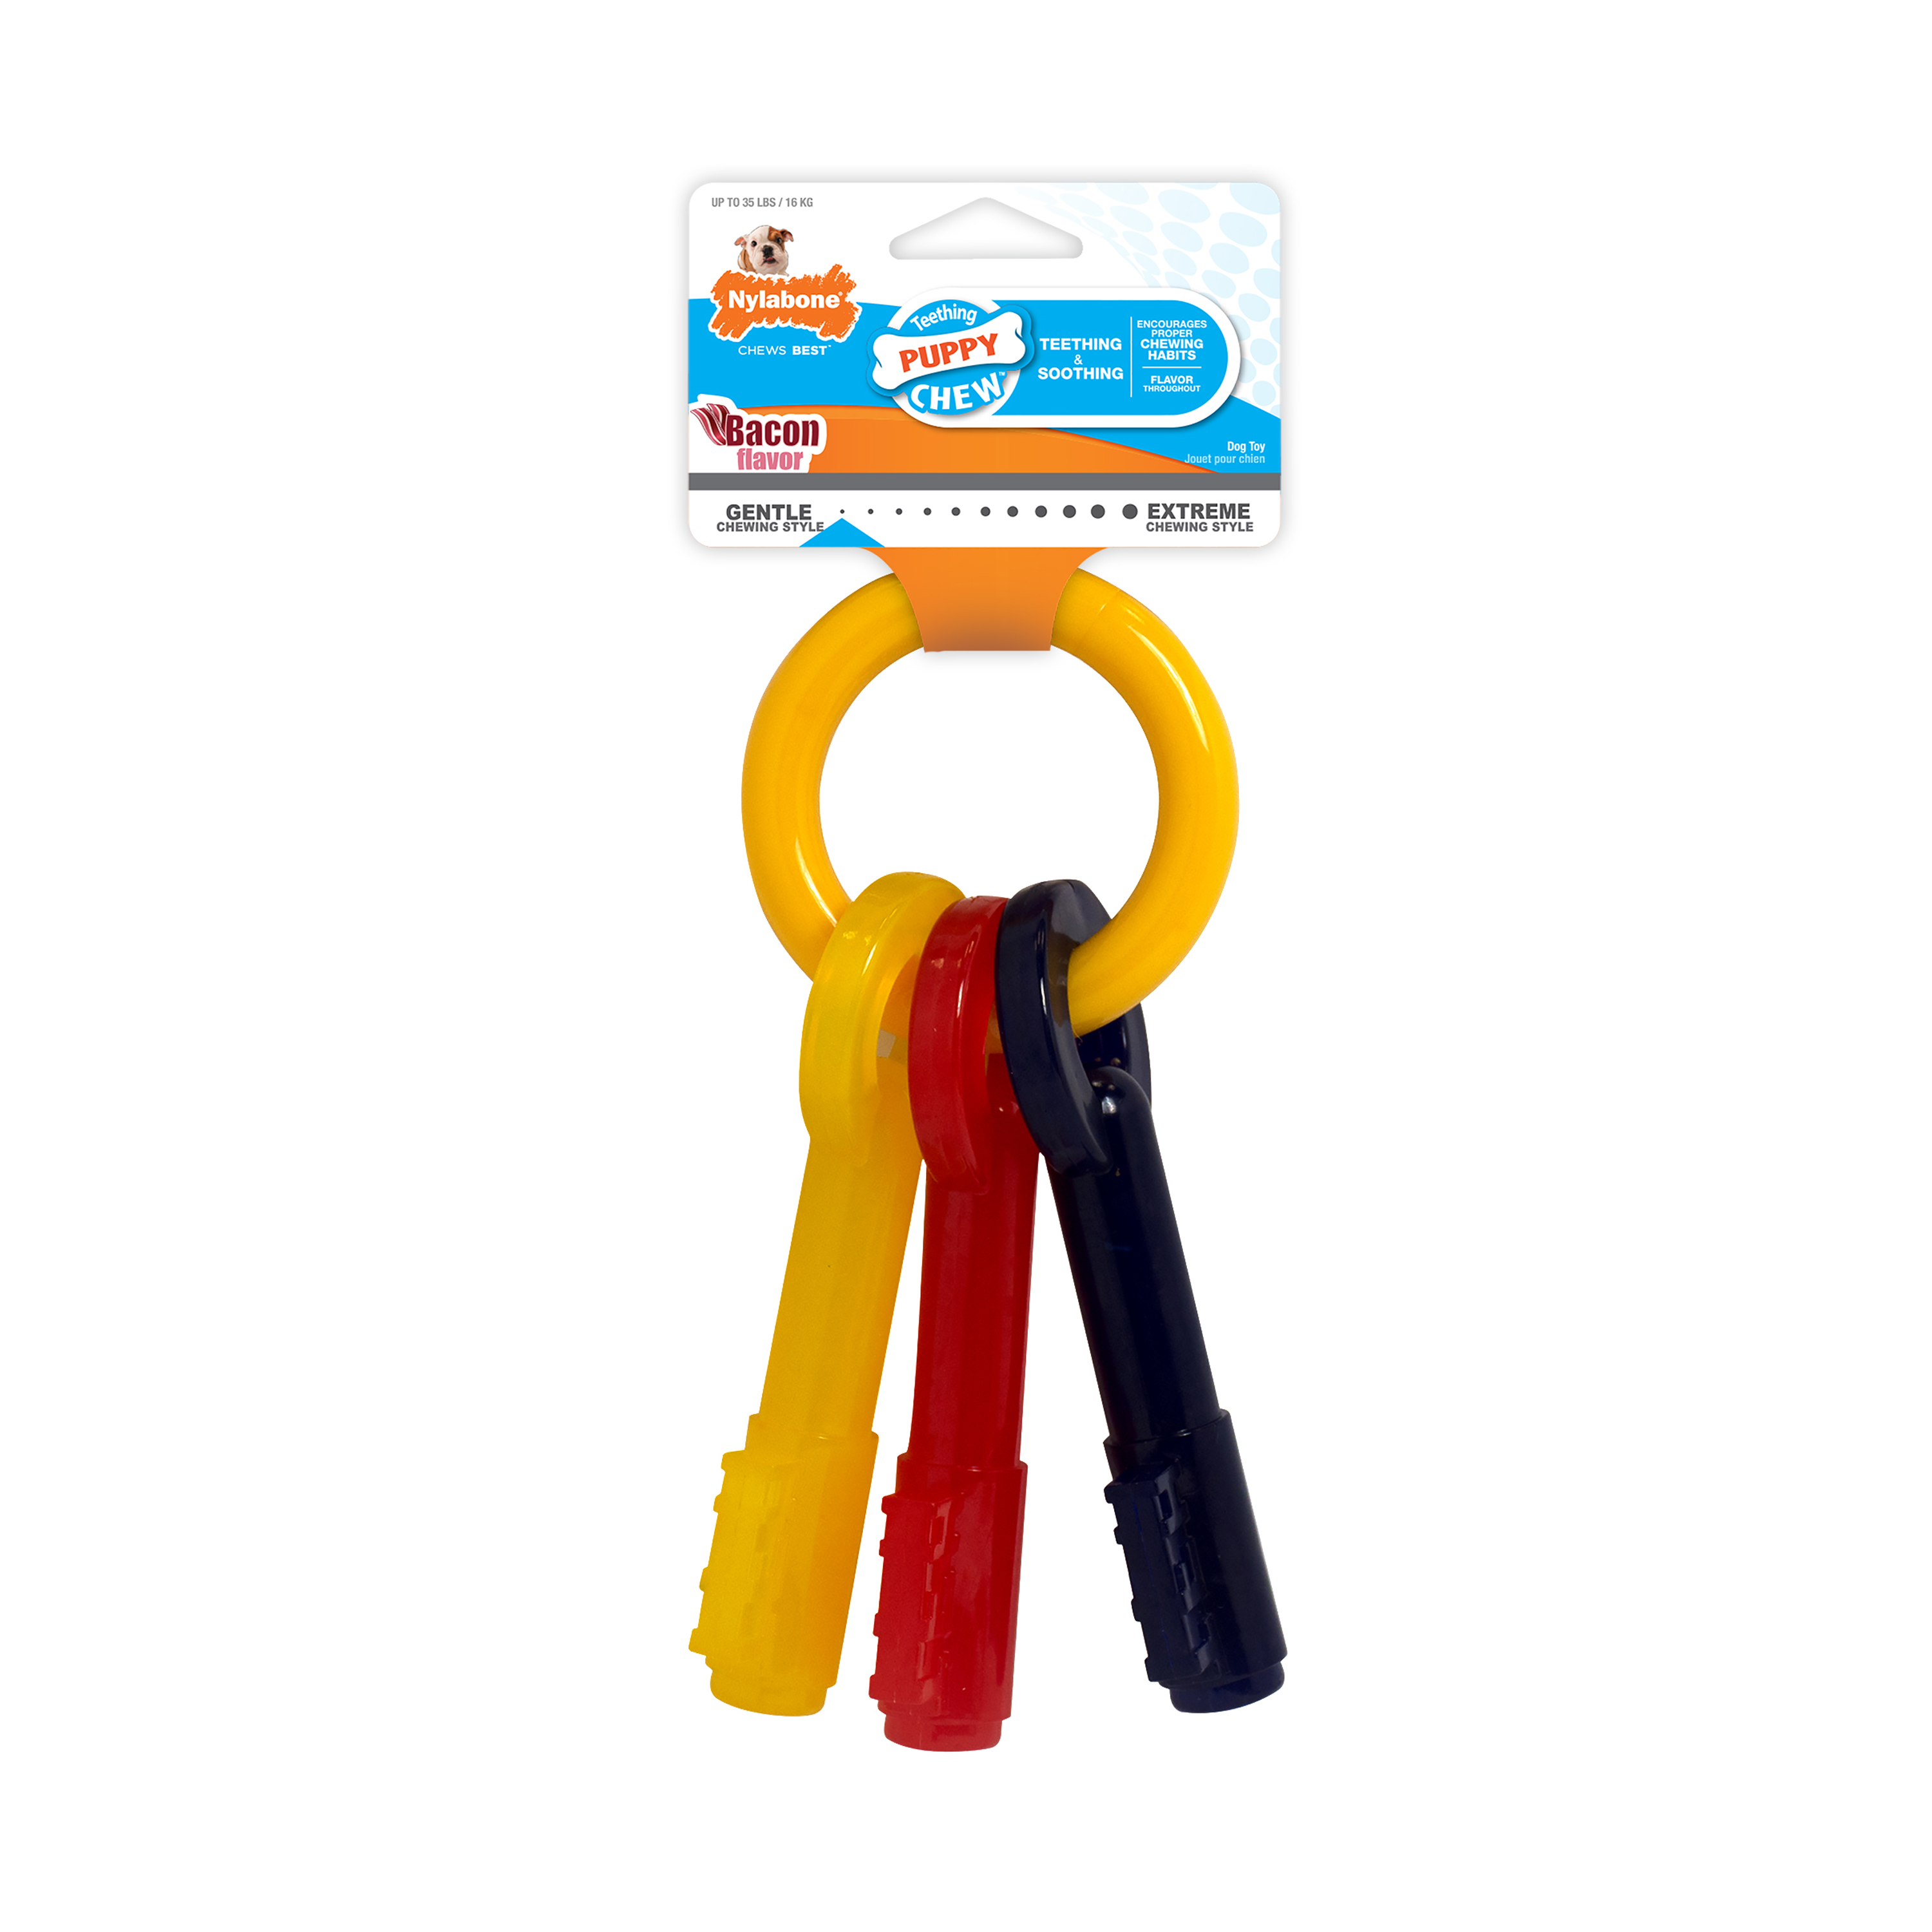 Nylabone Just for Puppies Teething Puppy Keys, Bacon Chew Toy, Souper